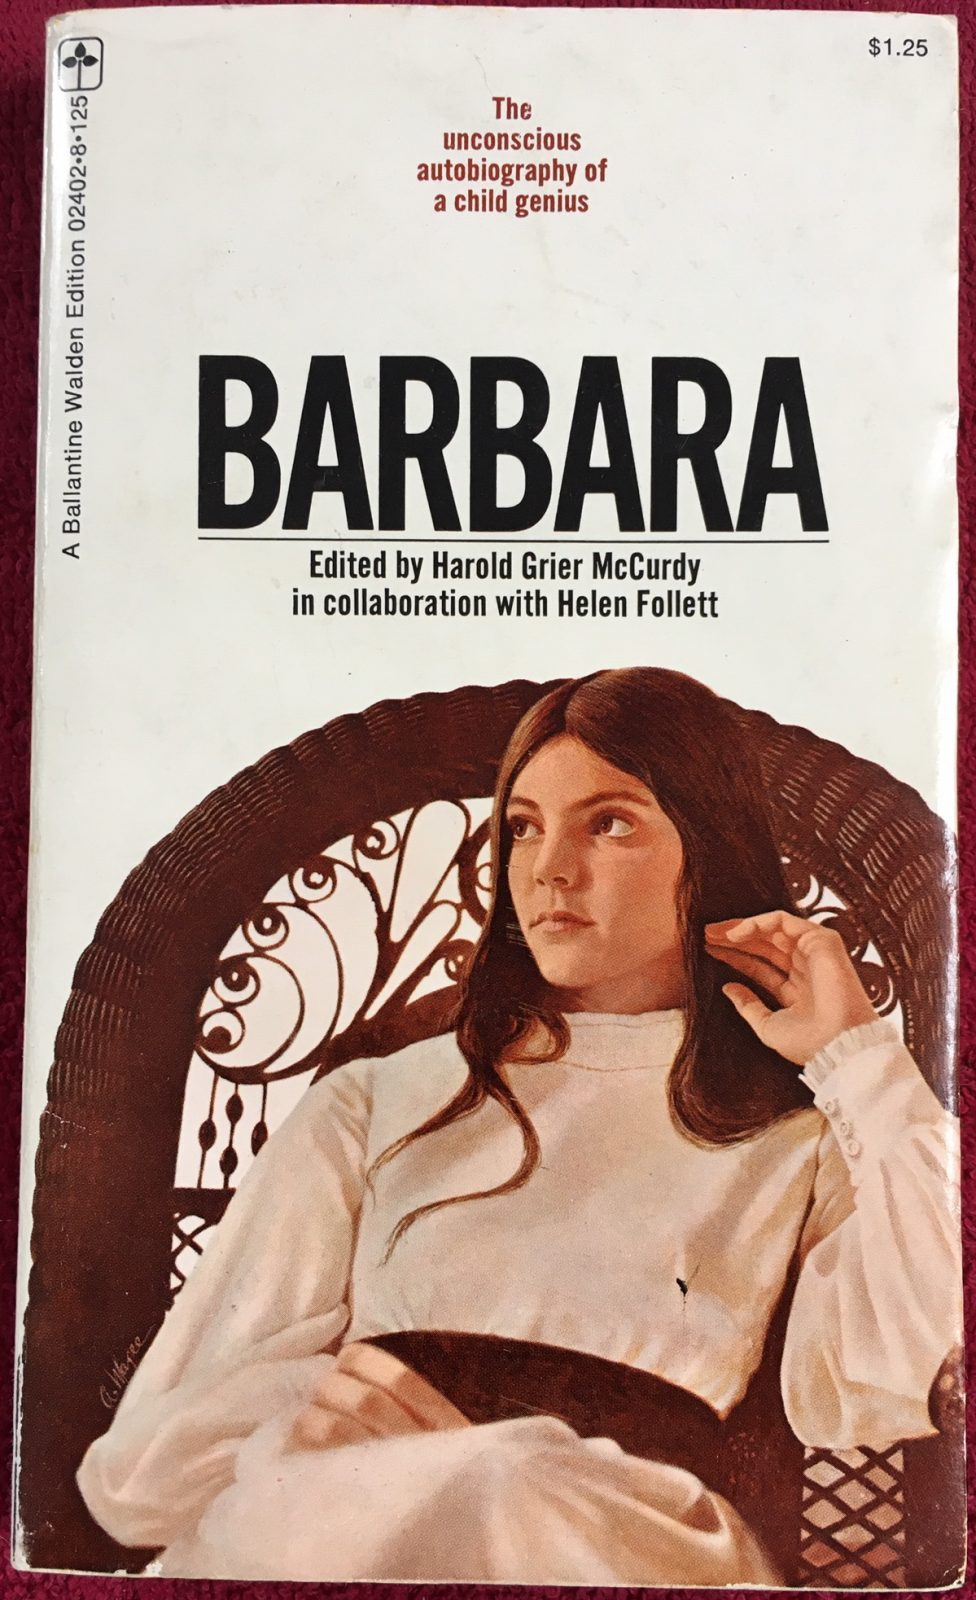 """Barbara: The Unconscious Autobiography of a Child Genius"" by Harold G. McCurdy and Helen Follett, Ballantine Books, 1971"